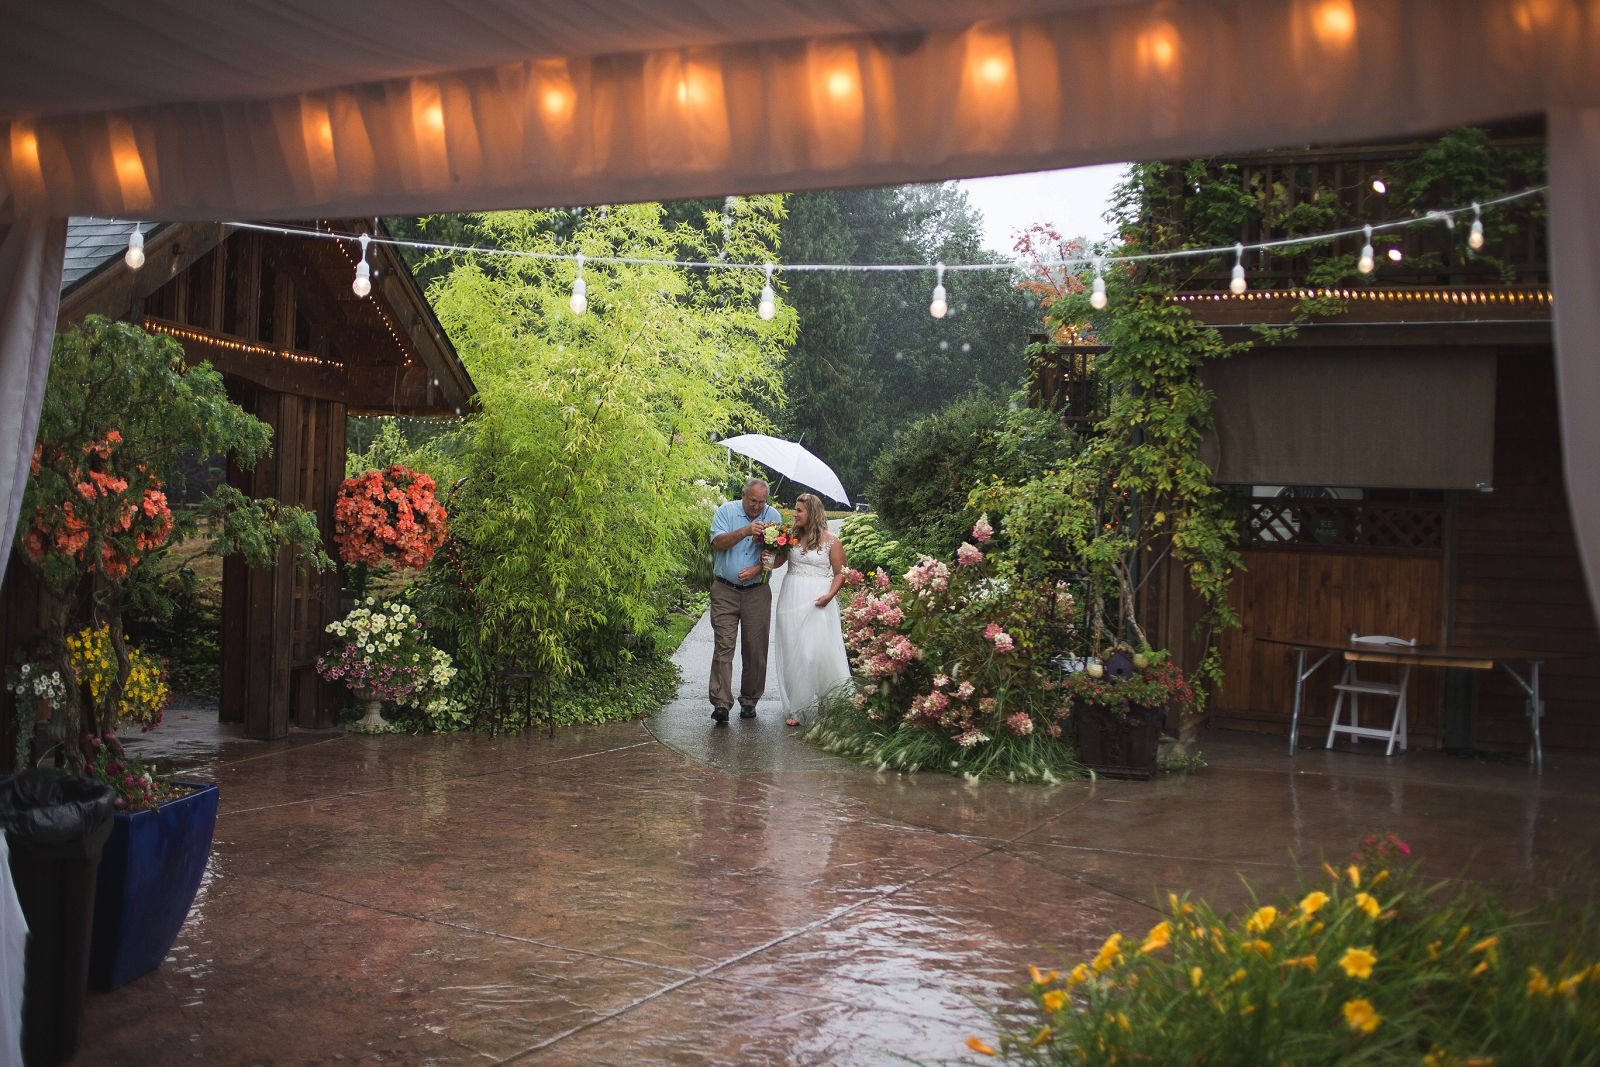 rainy-wedding-day-seattle-photographer-vannessa-kralovic.jpg